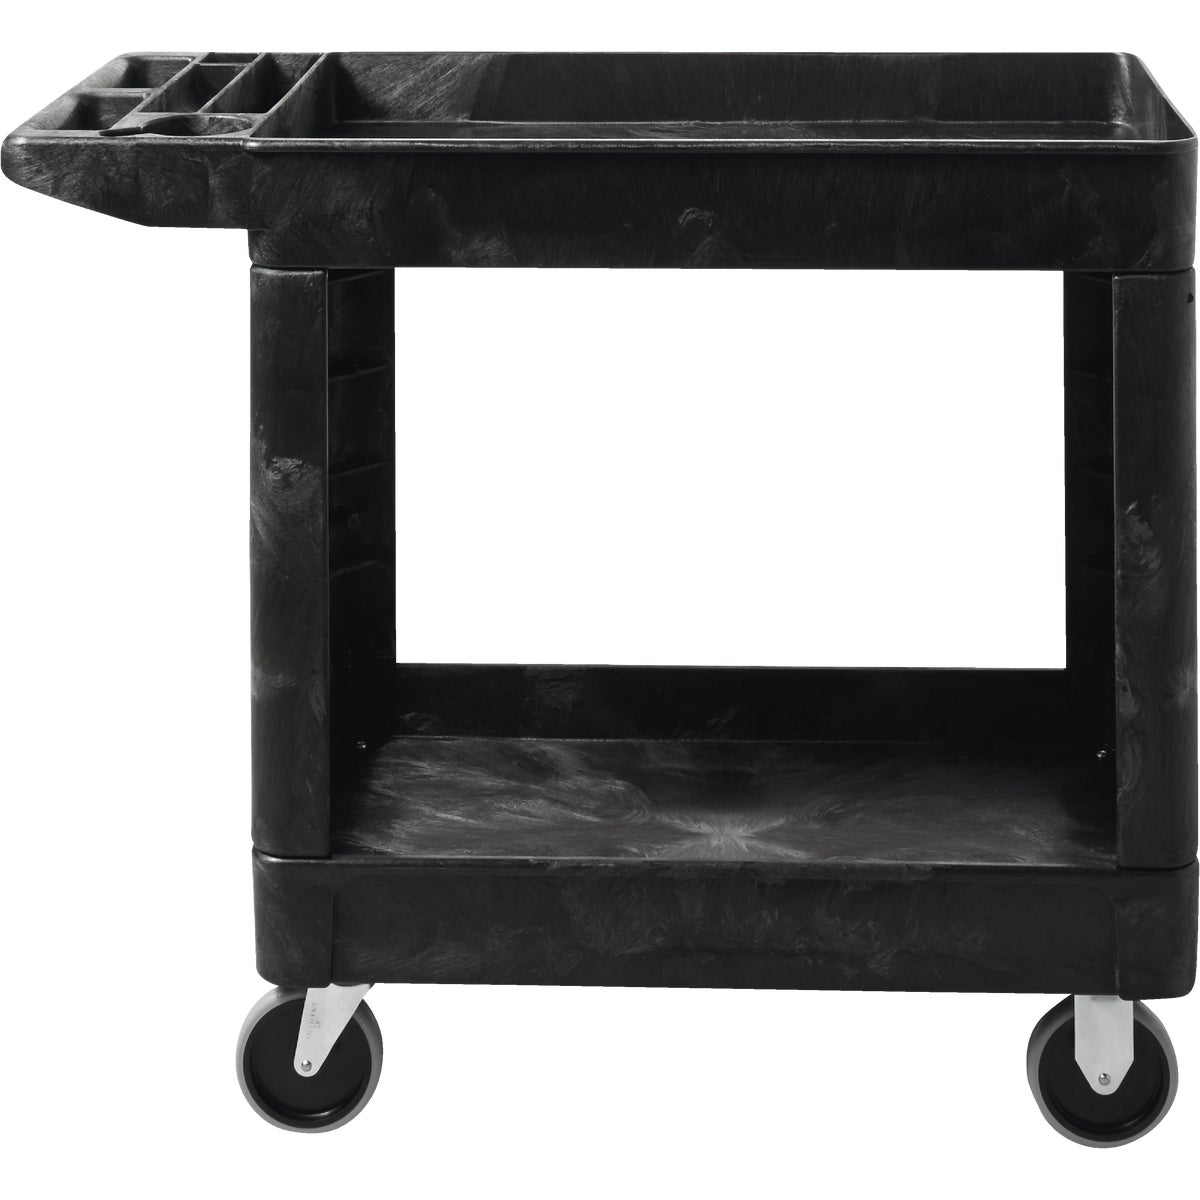 BLACK UTILITY CART - FG450500BLA by Rubbermaid Comm Prod